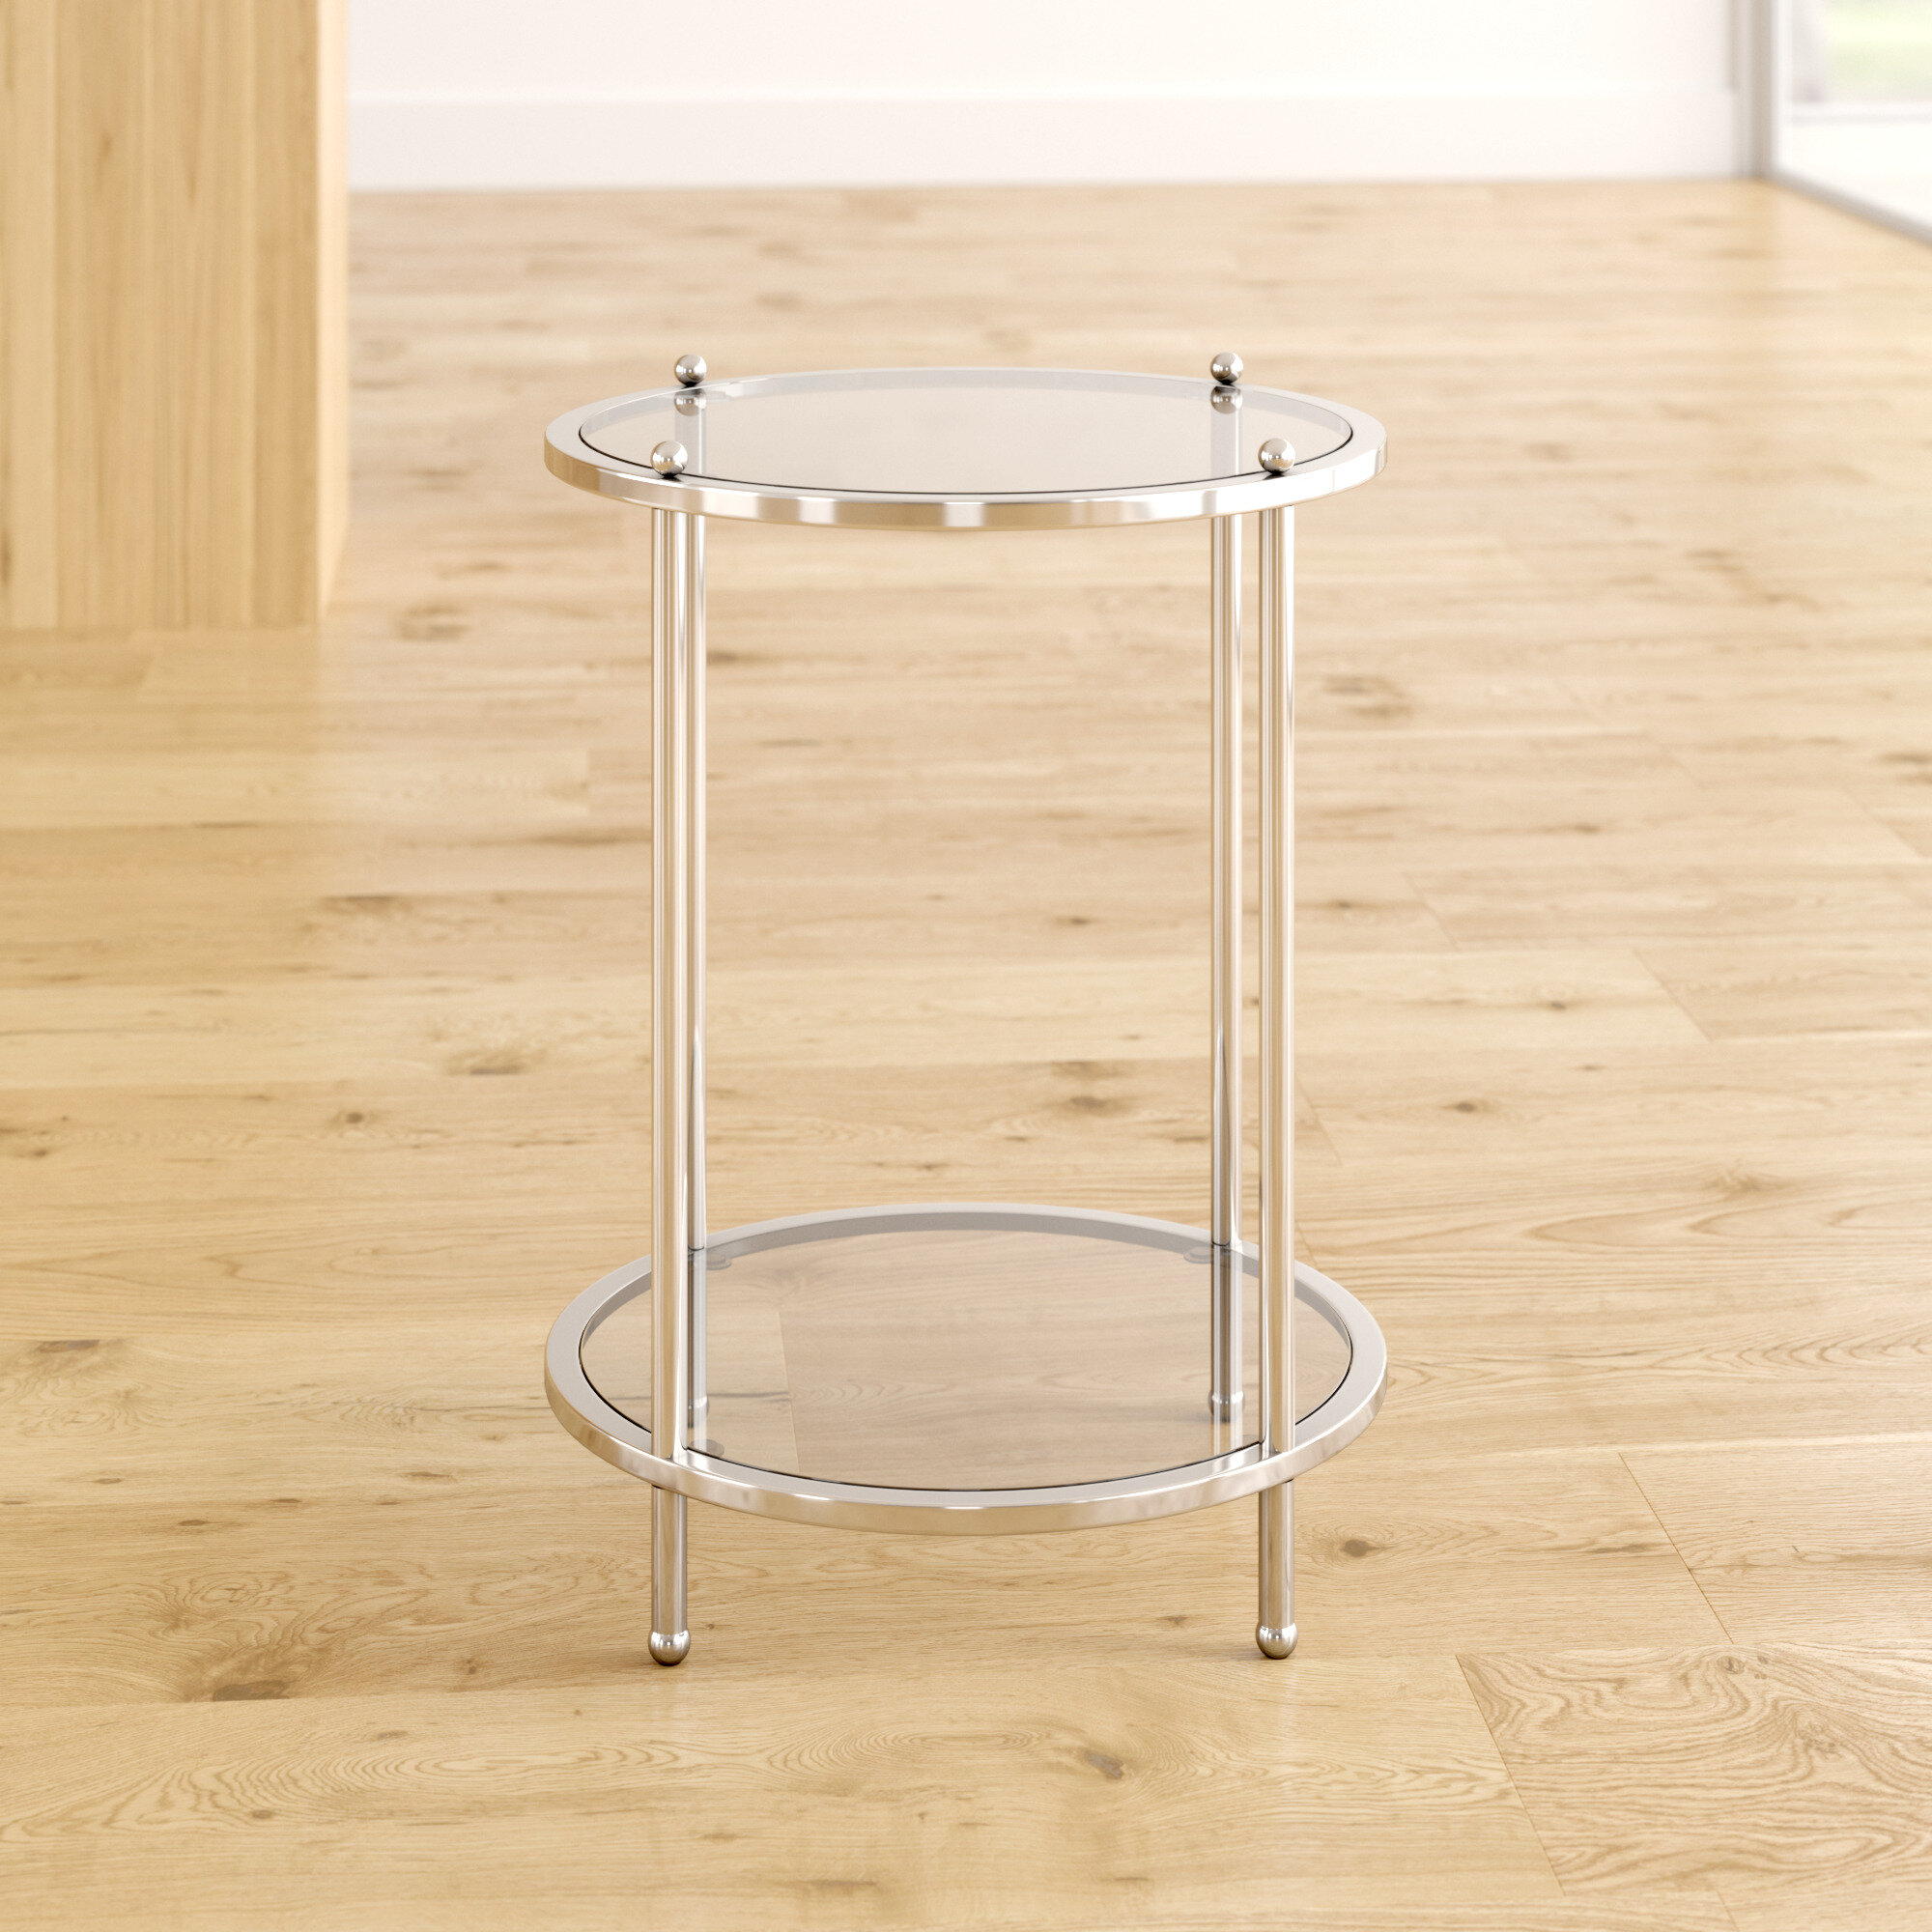 Willa Arlo Interiors Cathleen Glass Top End Table With Storage Reviews Wayfair